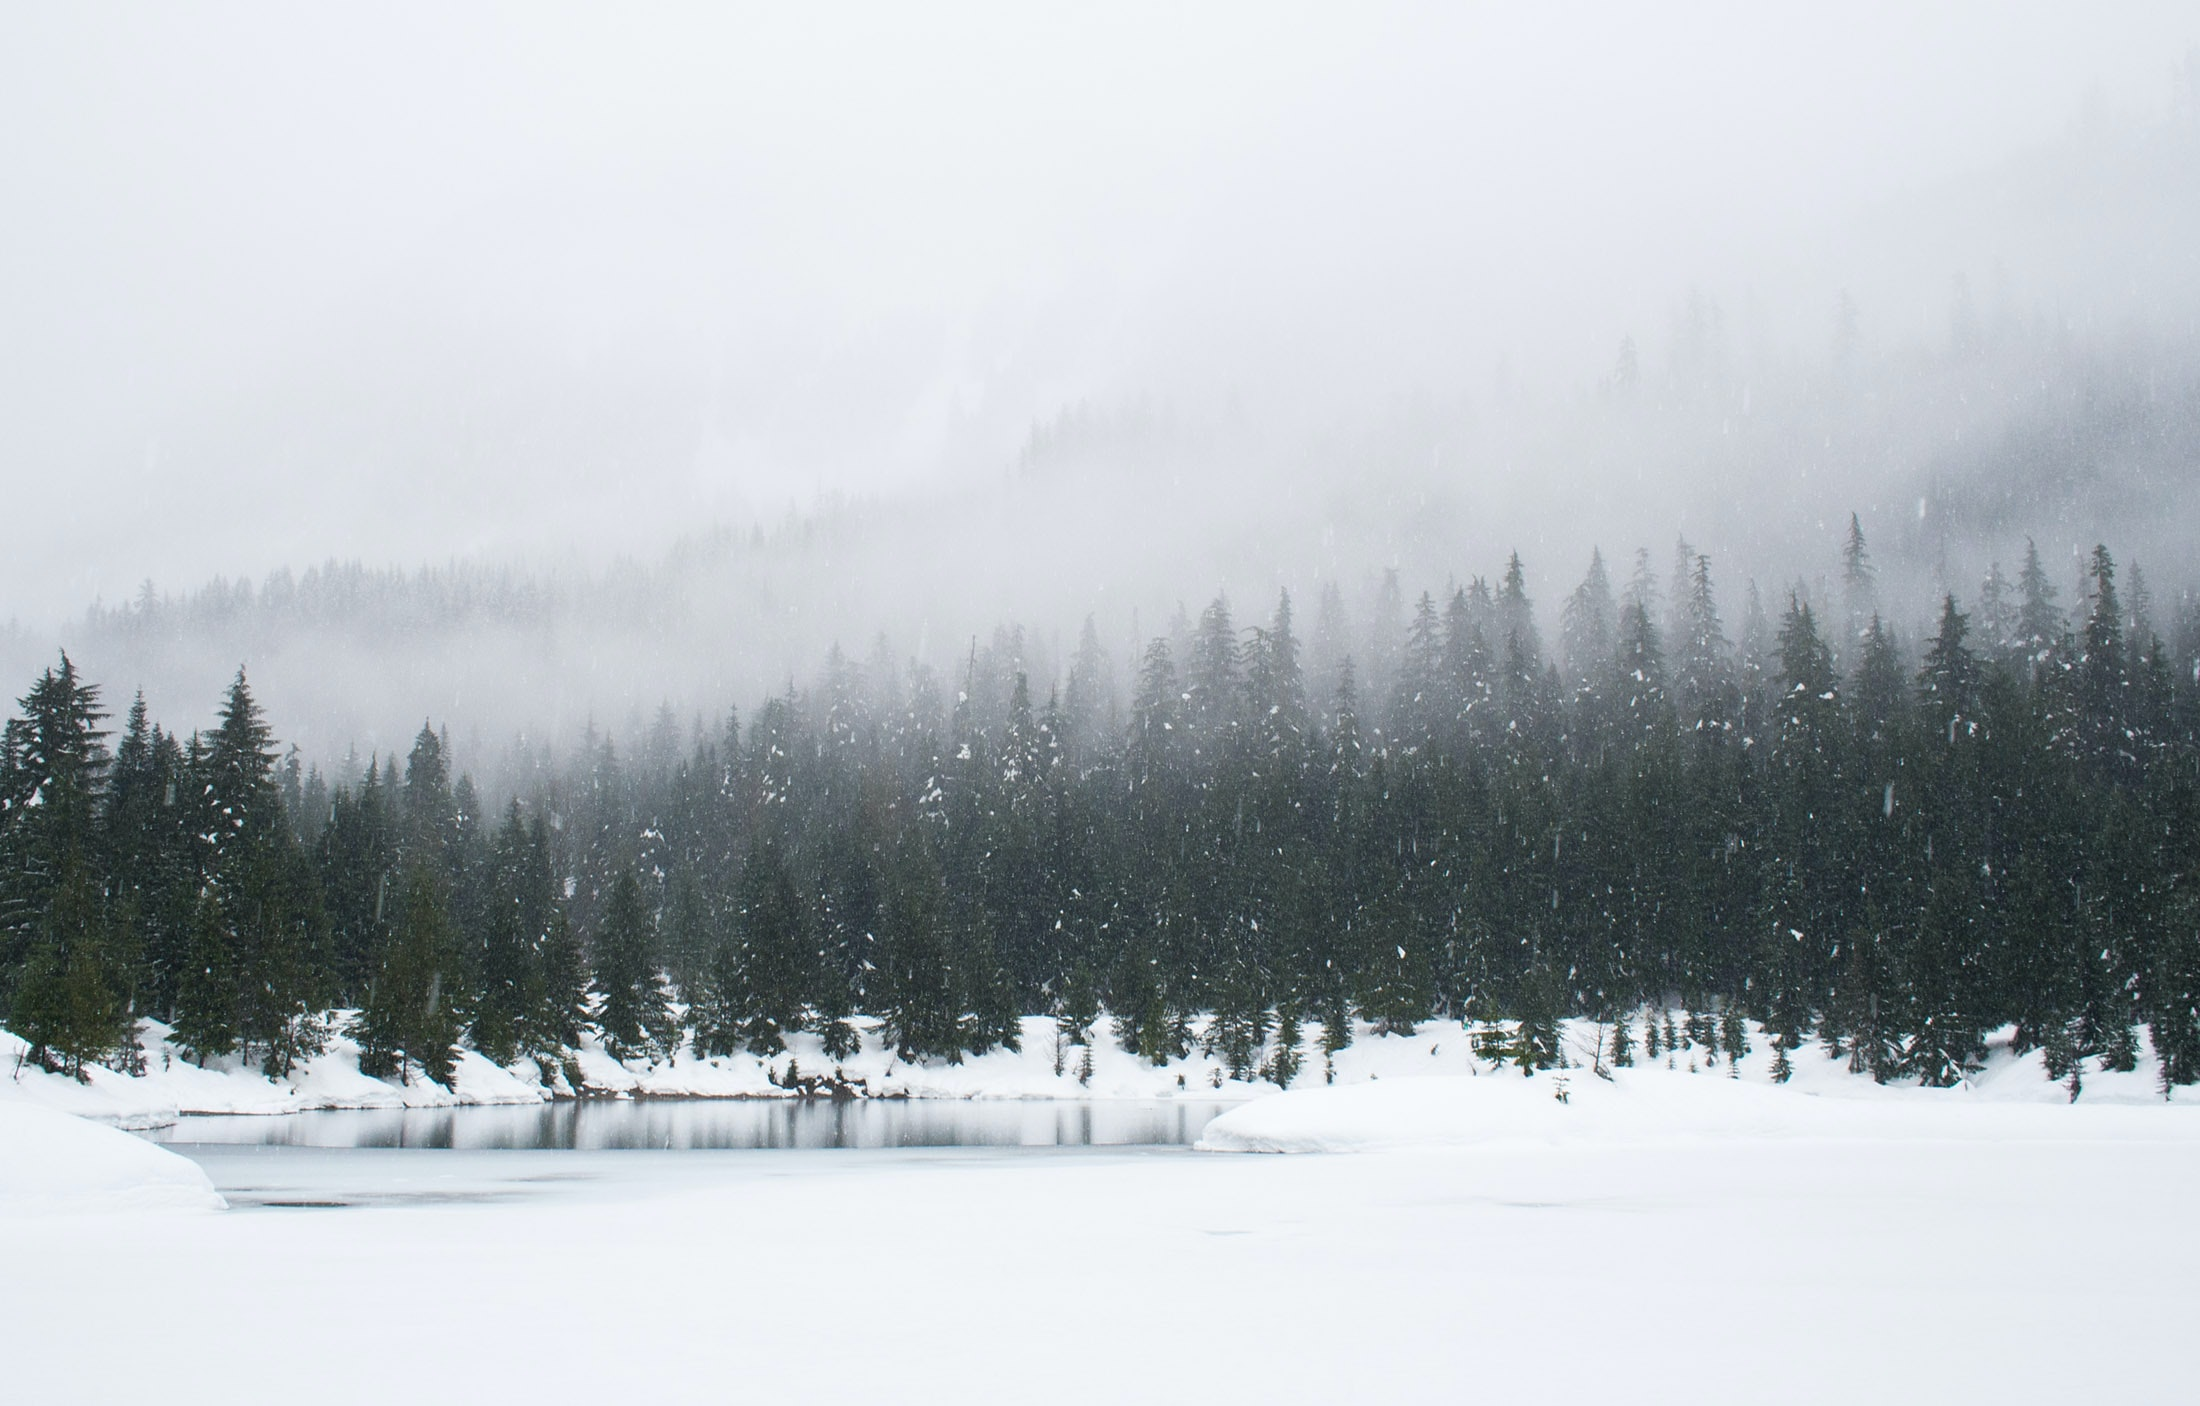 An evergreen landscape shot capturing a foggy, snowy day at a large mountain forest